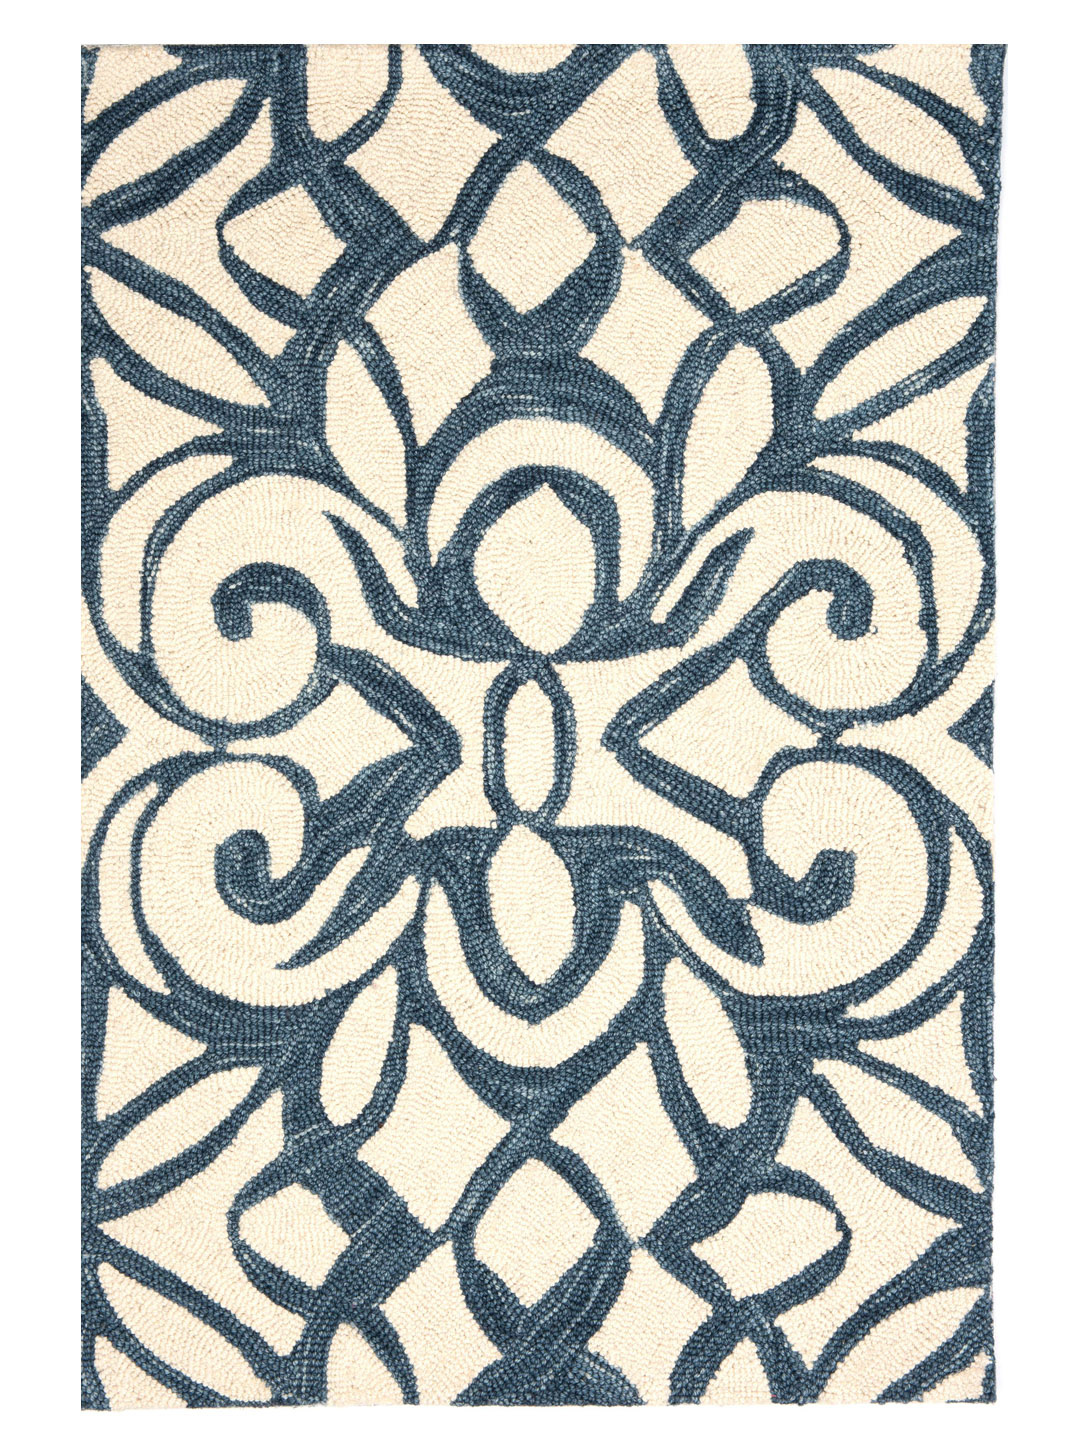 Chandelier Ink Wool Micro Hooked Rug-1